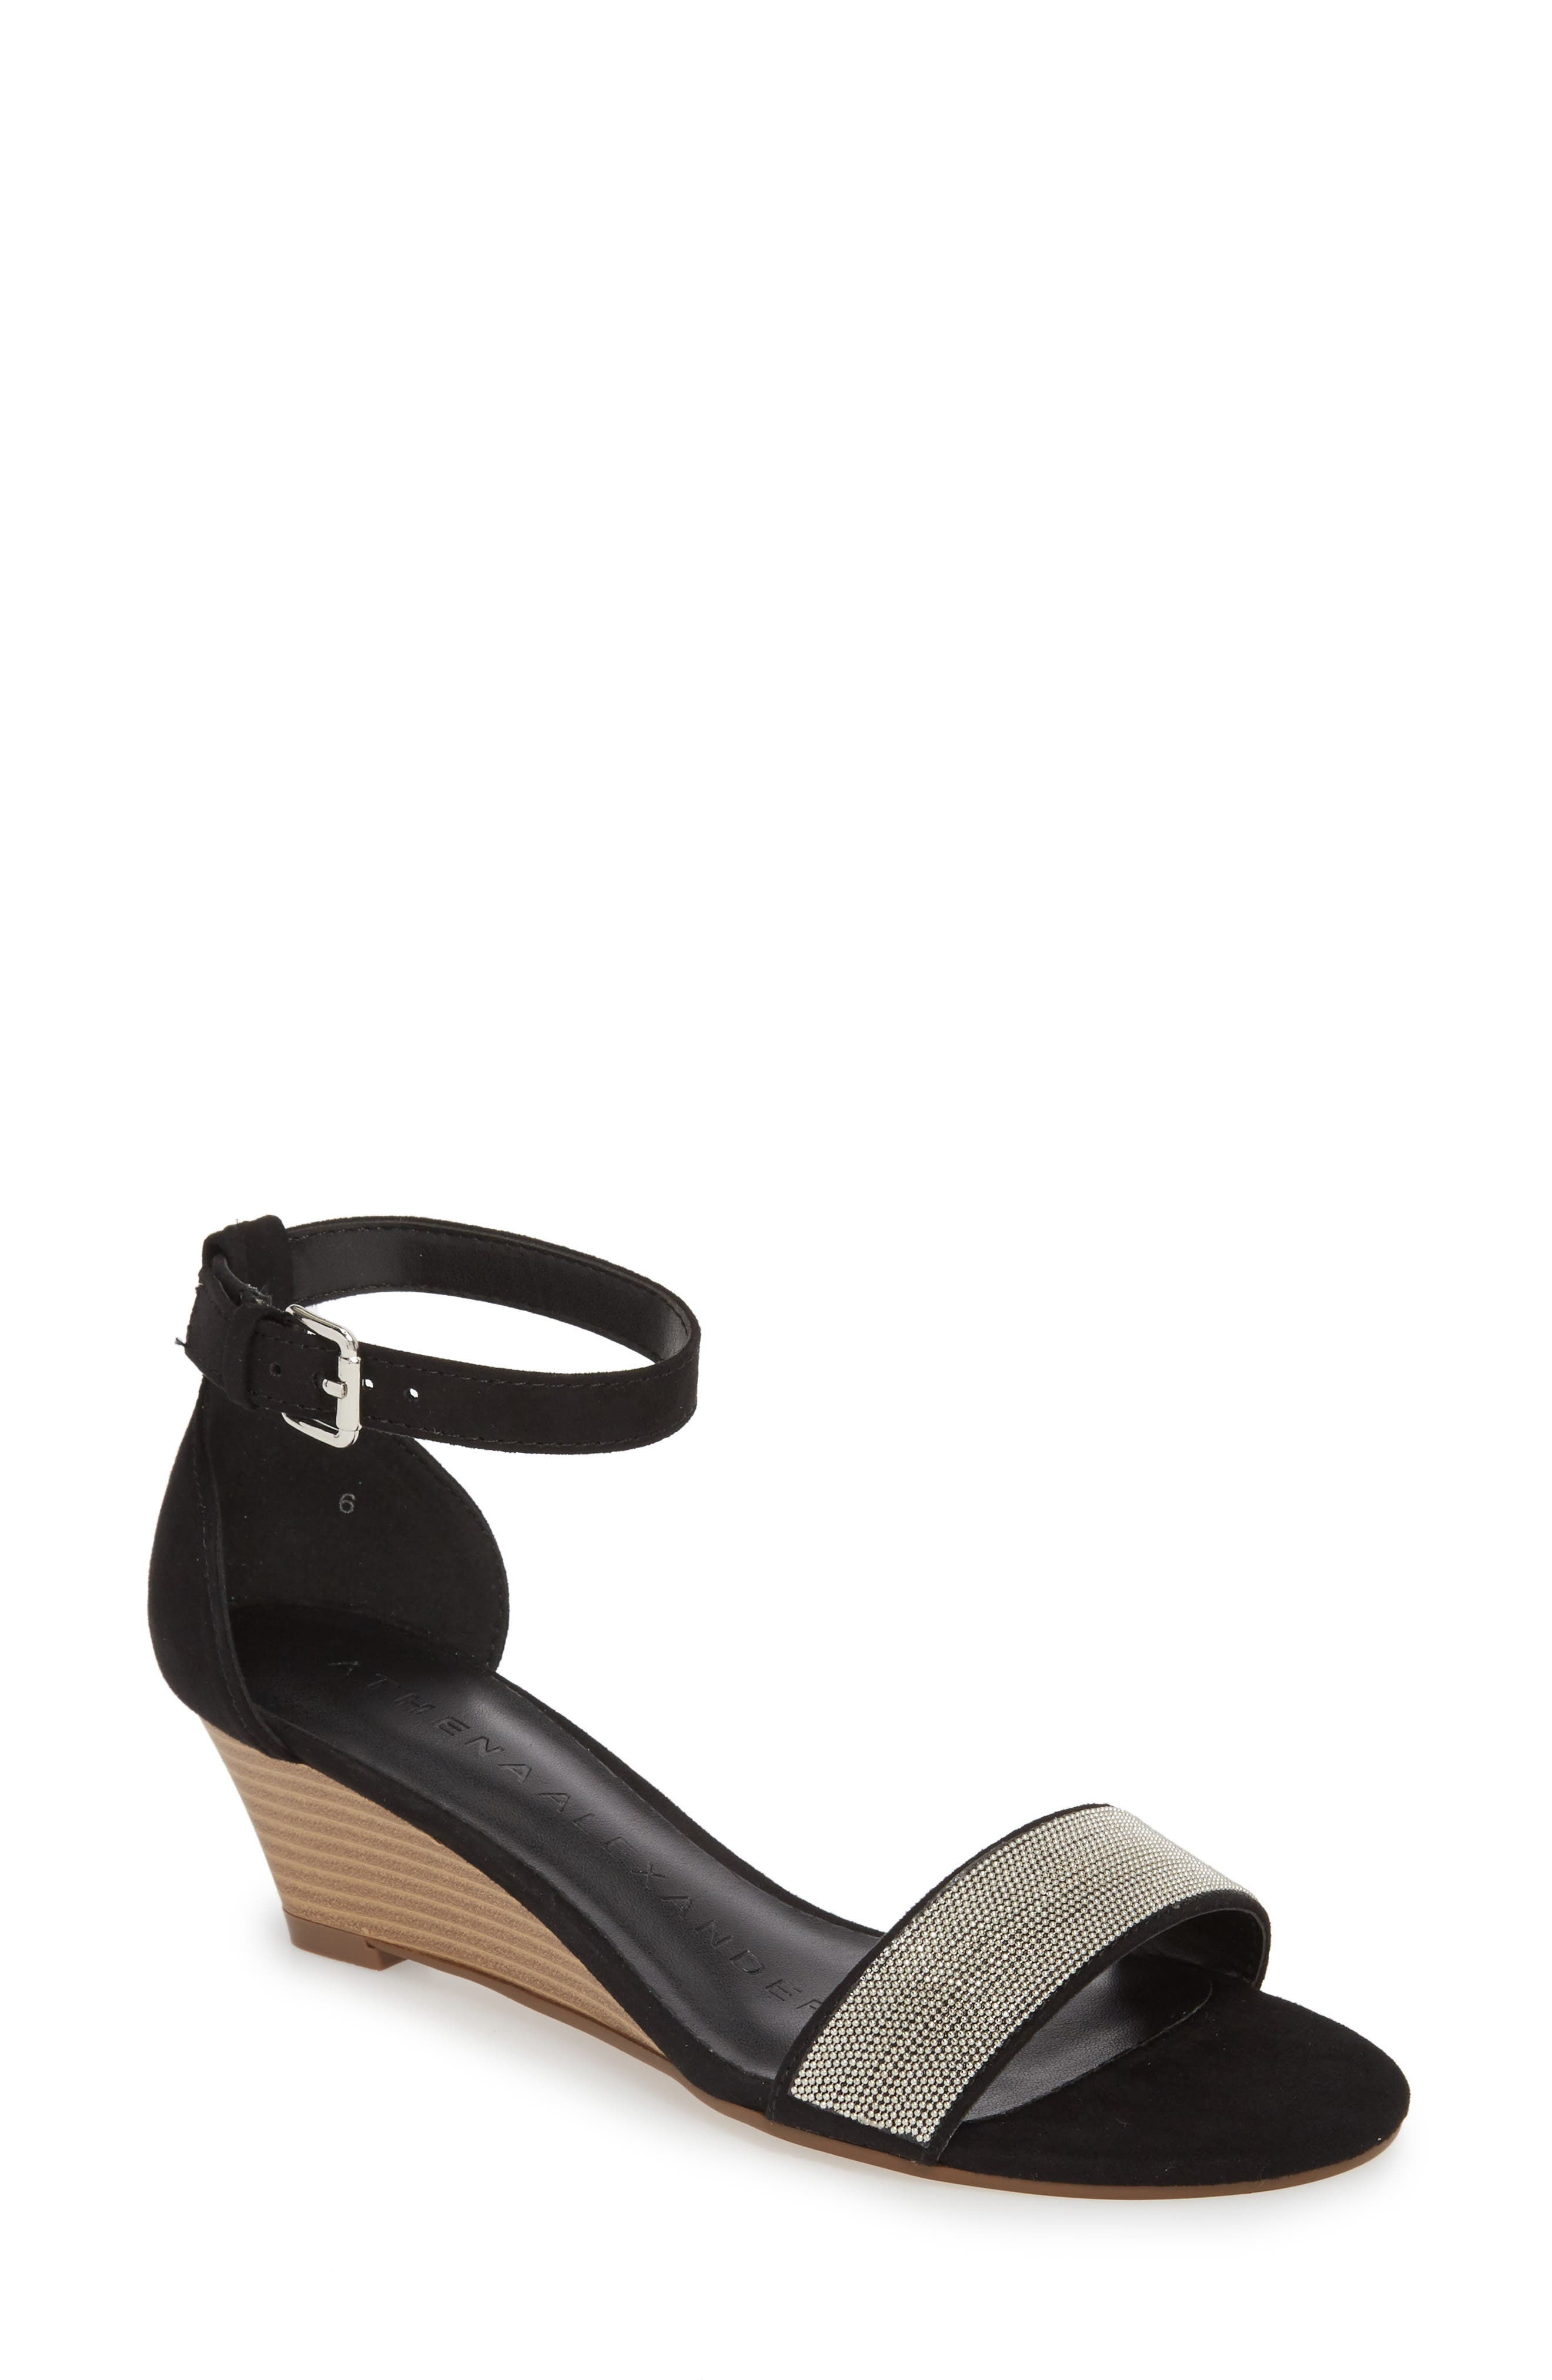 Enfield Ankle Strap Wedge Sandal,                             Main thumbnail 1, color,                             003